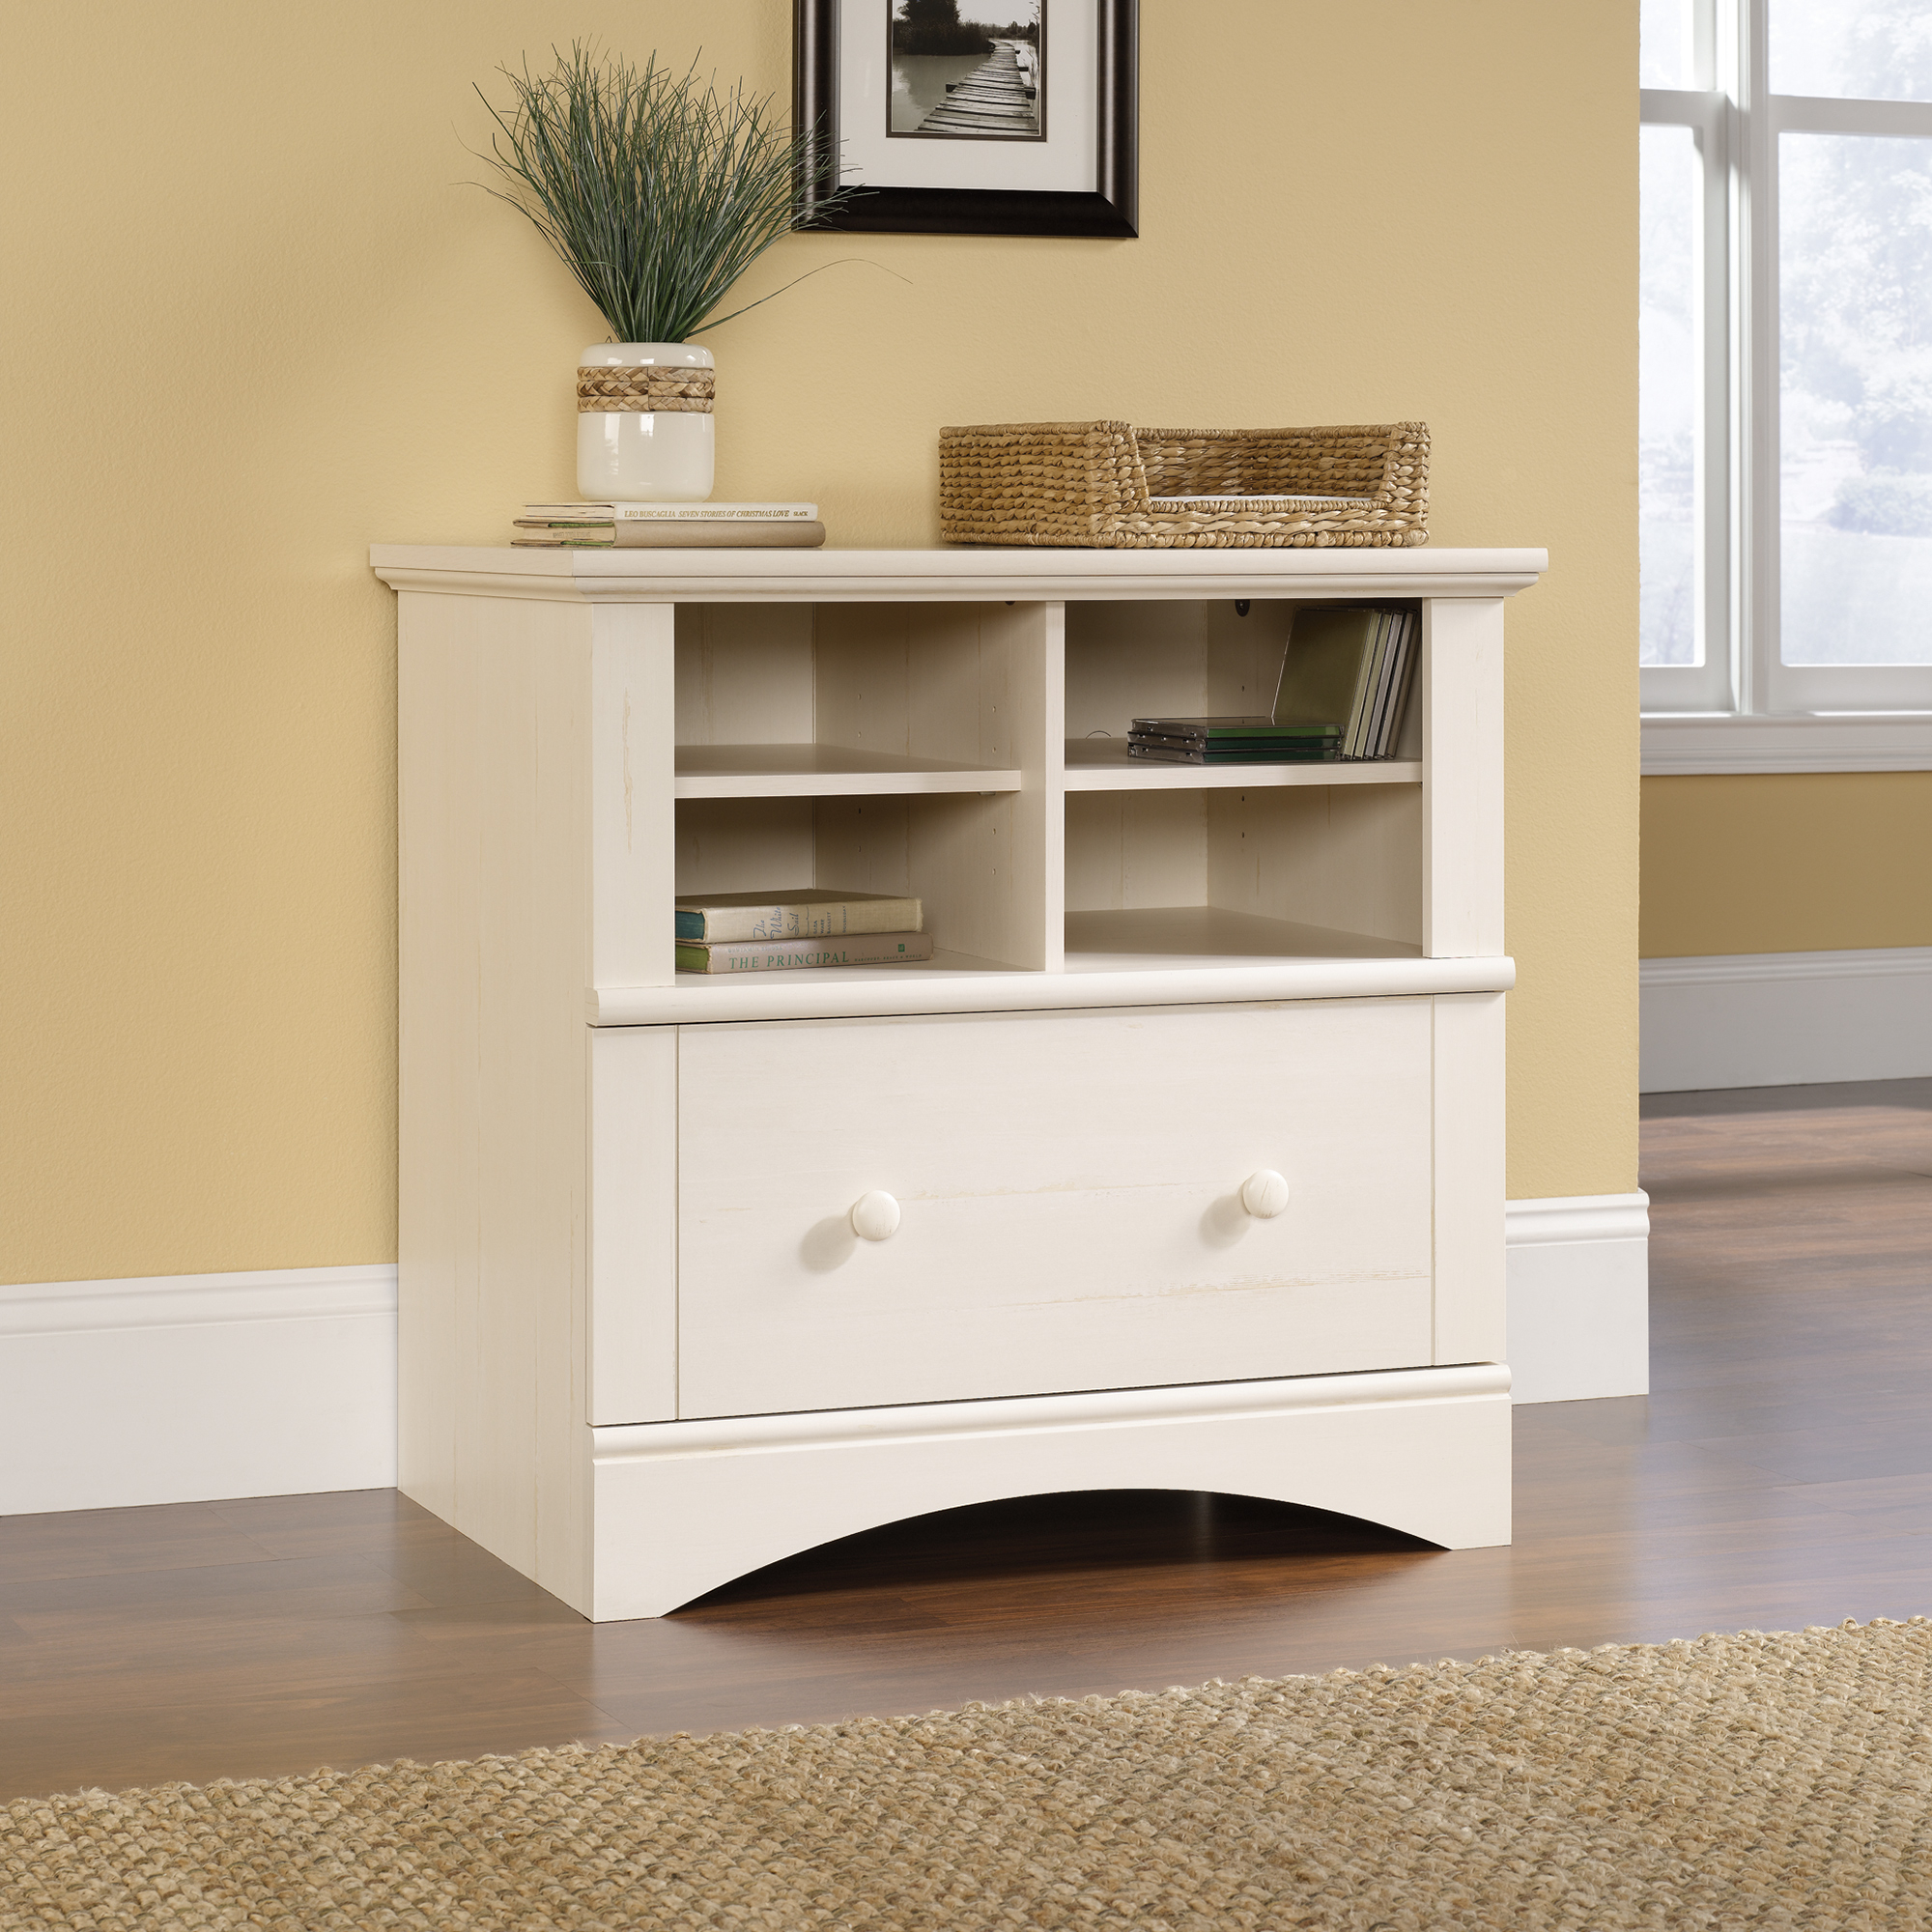 Sauder Harbor View Lateral File 158002 Sauder The Furniture Co intended for dimensions 2000 X 2000